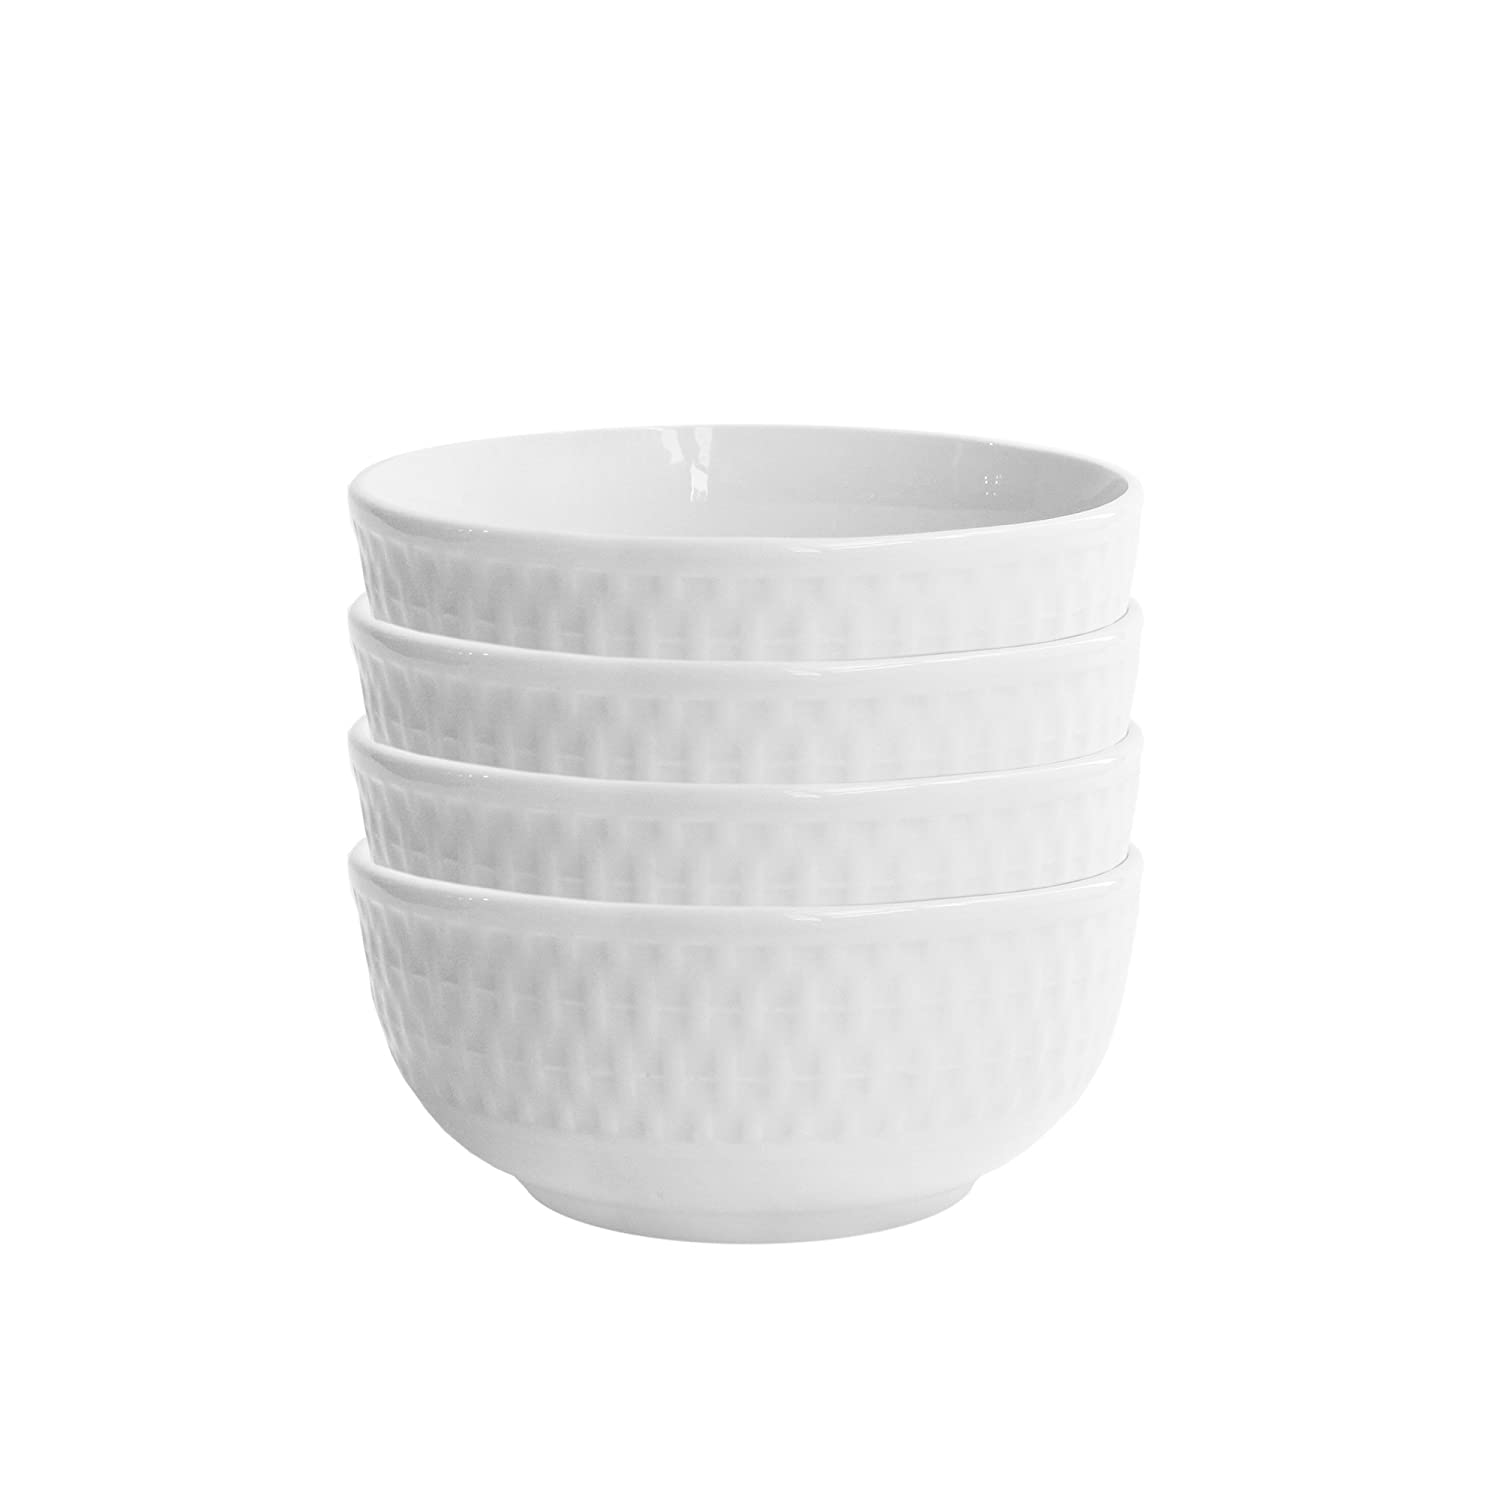 Elle Décor 6831-4BWL Juliette Kitchen Bowls, White